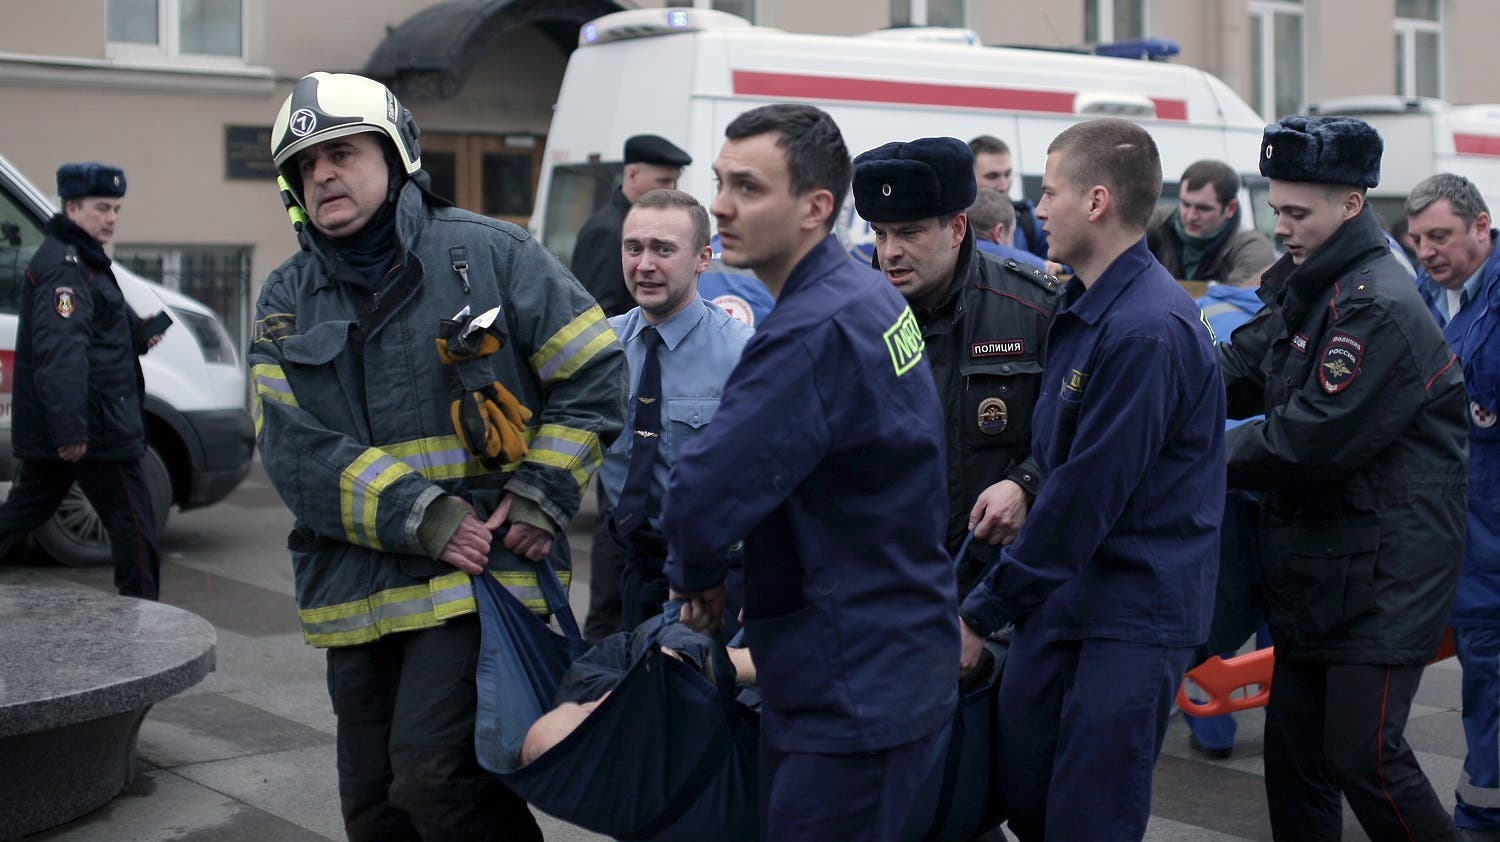 Police and emergency services personnel carry an injured person on a stretcher outside Technological Institute metro station in Saint Petersburg on April 3, 2017 (Photo: Alexander Bulekov/AFP)